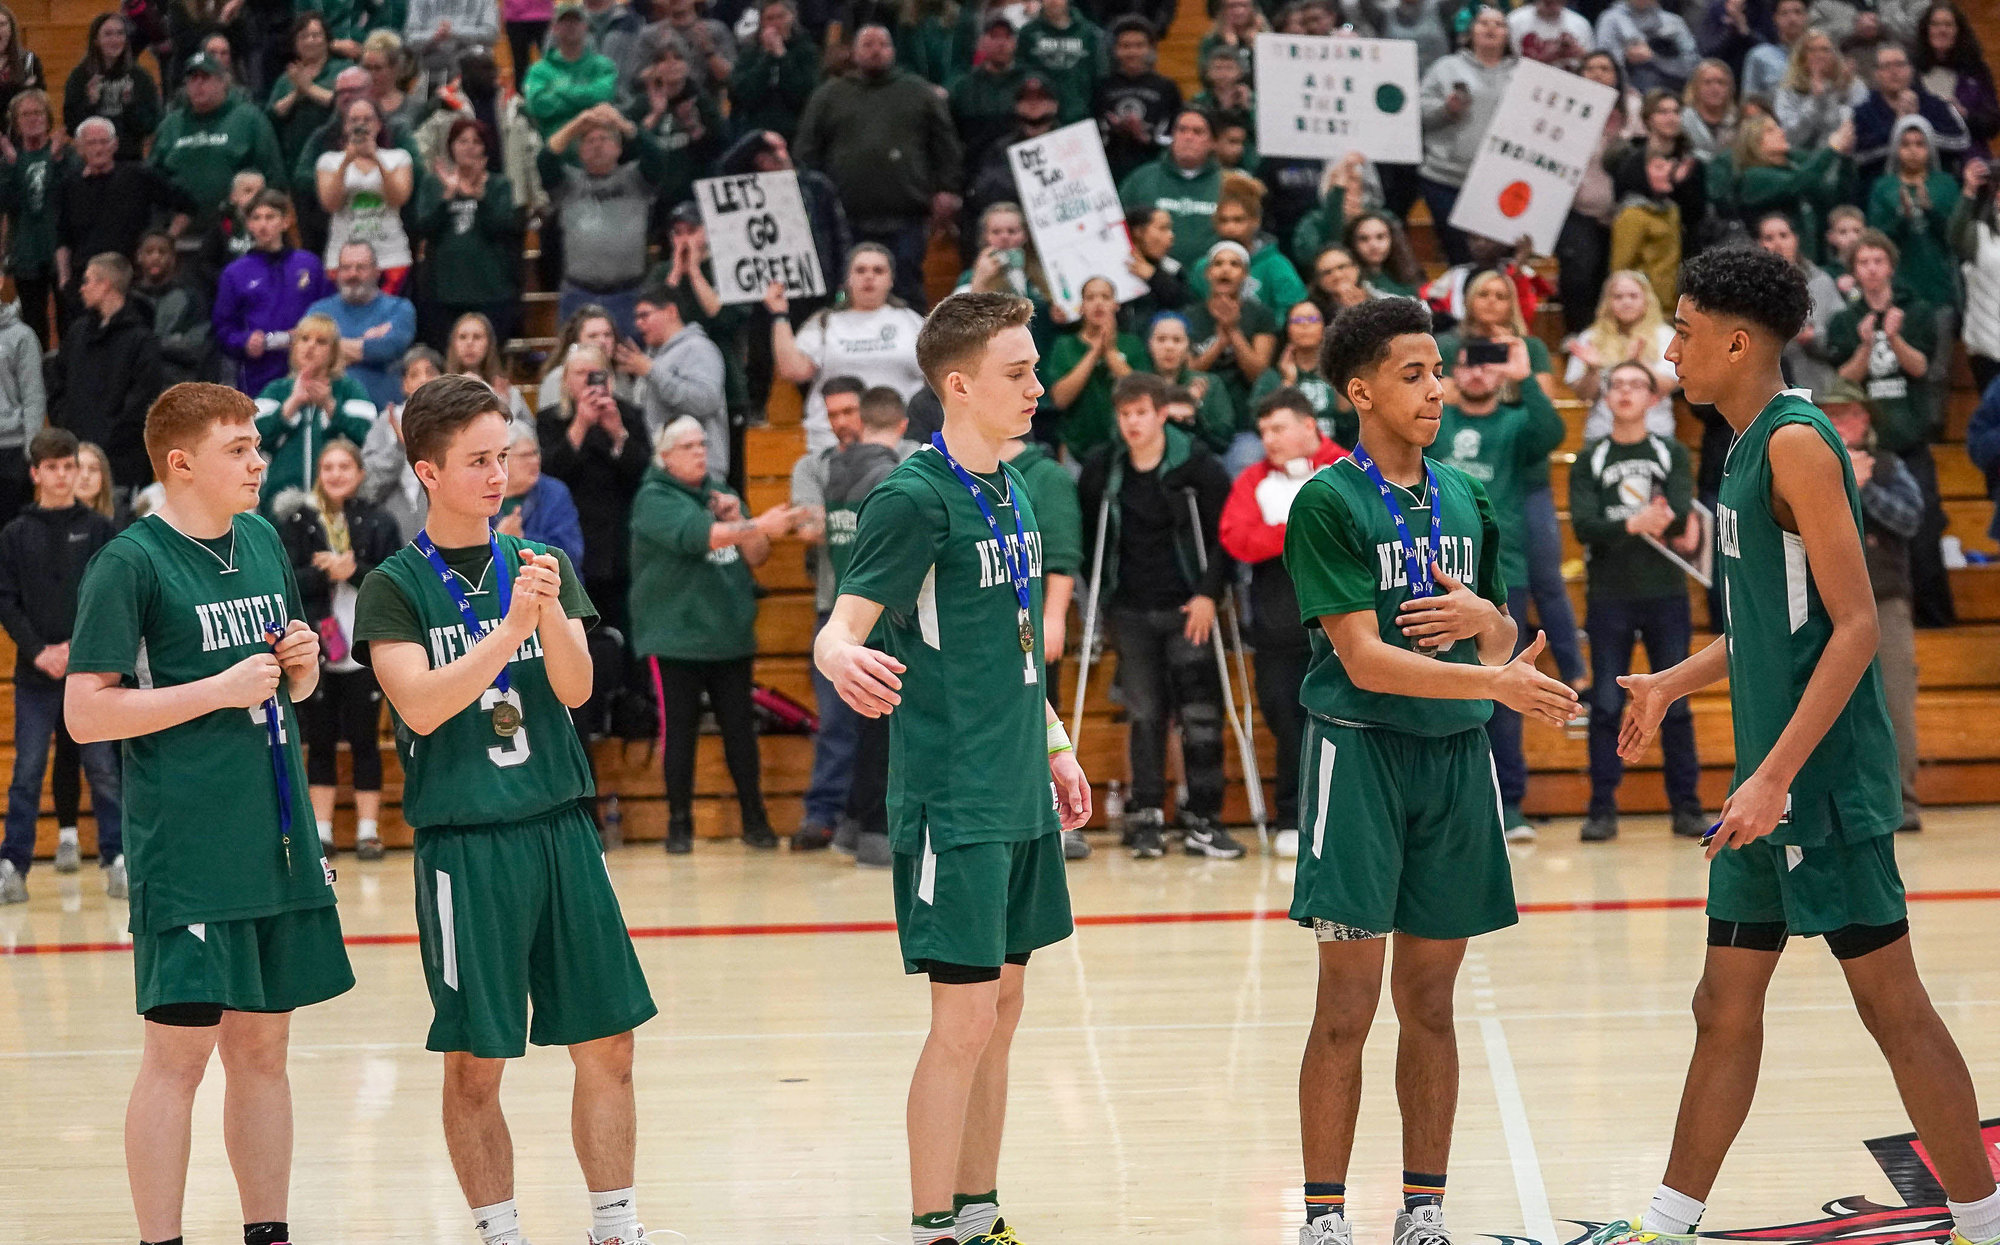 (From left to right) Newfield basketball players Dylan Zifchock, Alex Schwoeble, Jacob Humble, Jalen Hardison, and Daejahd Leckey receive their Section IV Championship medals in front of fans. It is the Trojans' third Section IV title in four years.